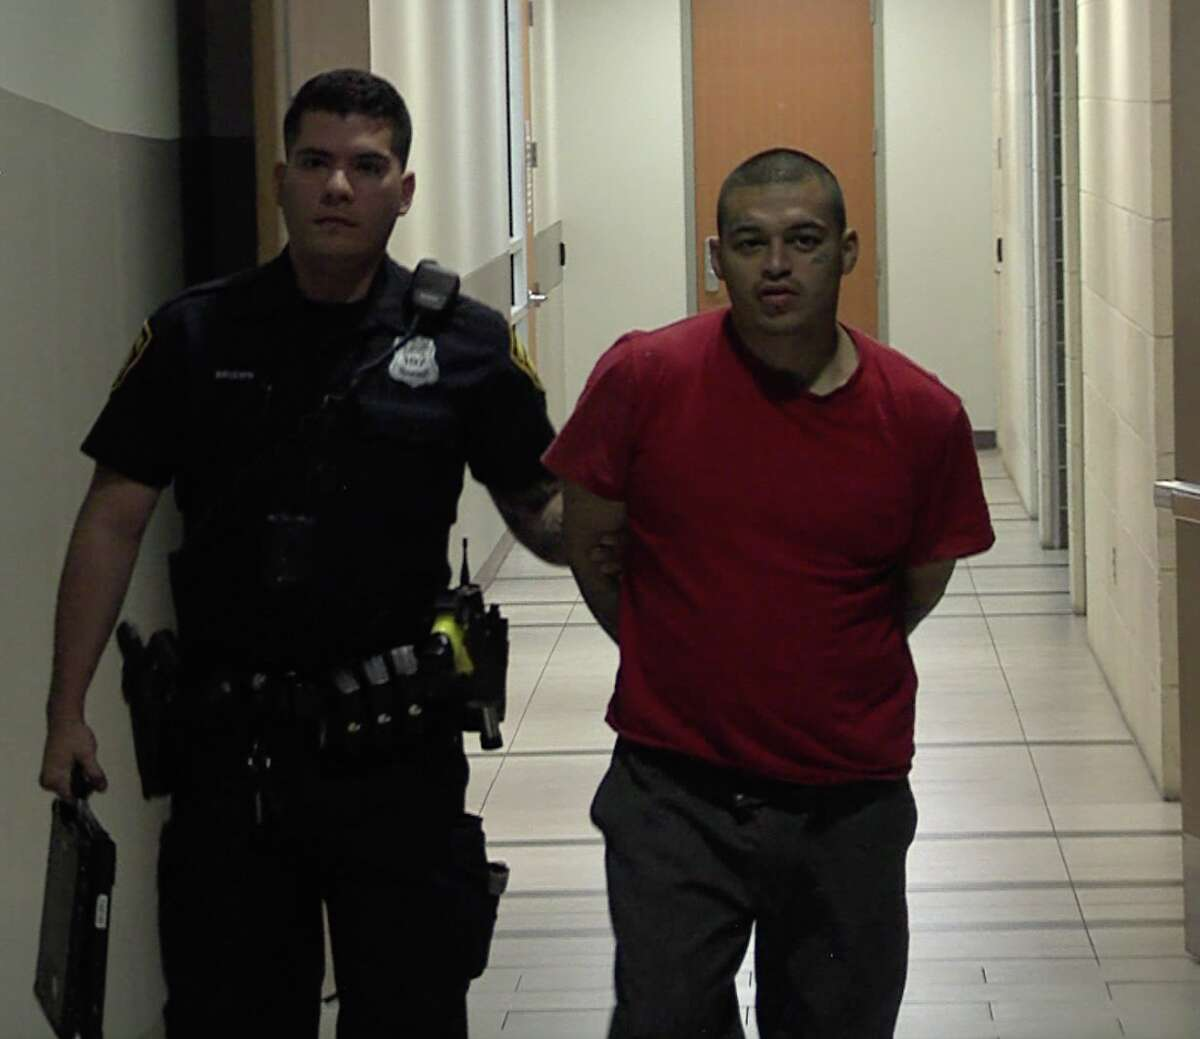 Abel Garcia, 31, was arrested Saturday in connection with a stabbing that left a 44-year-old man dead Friday afternoon.